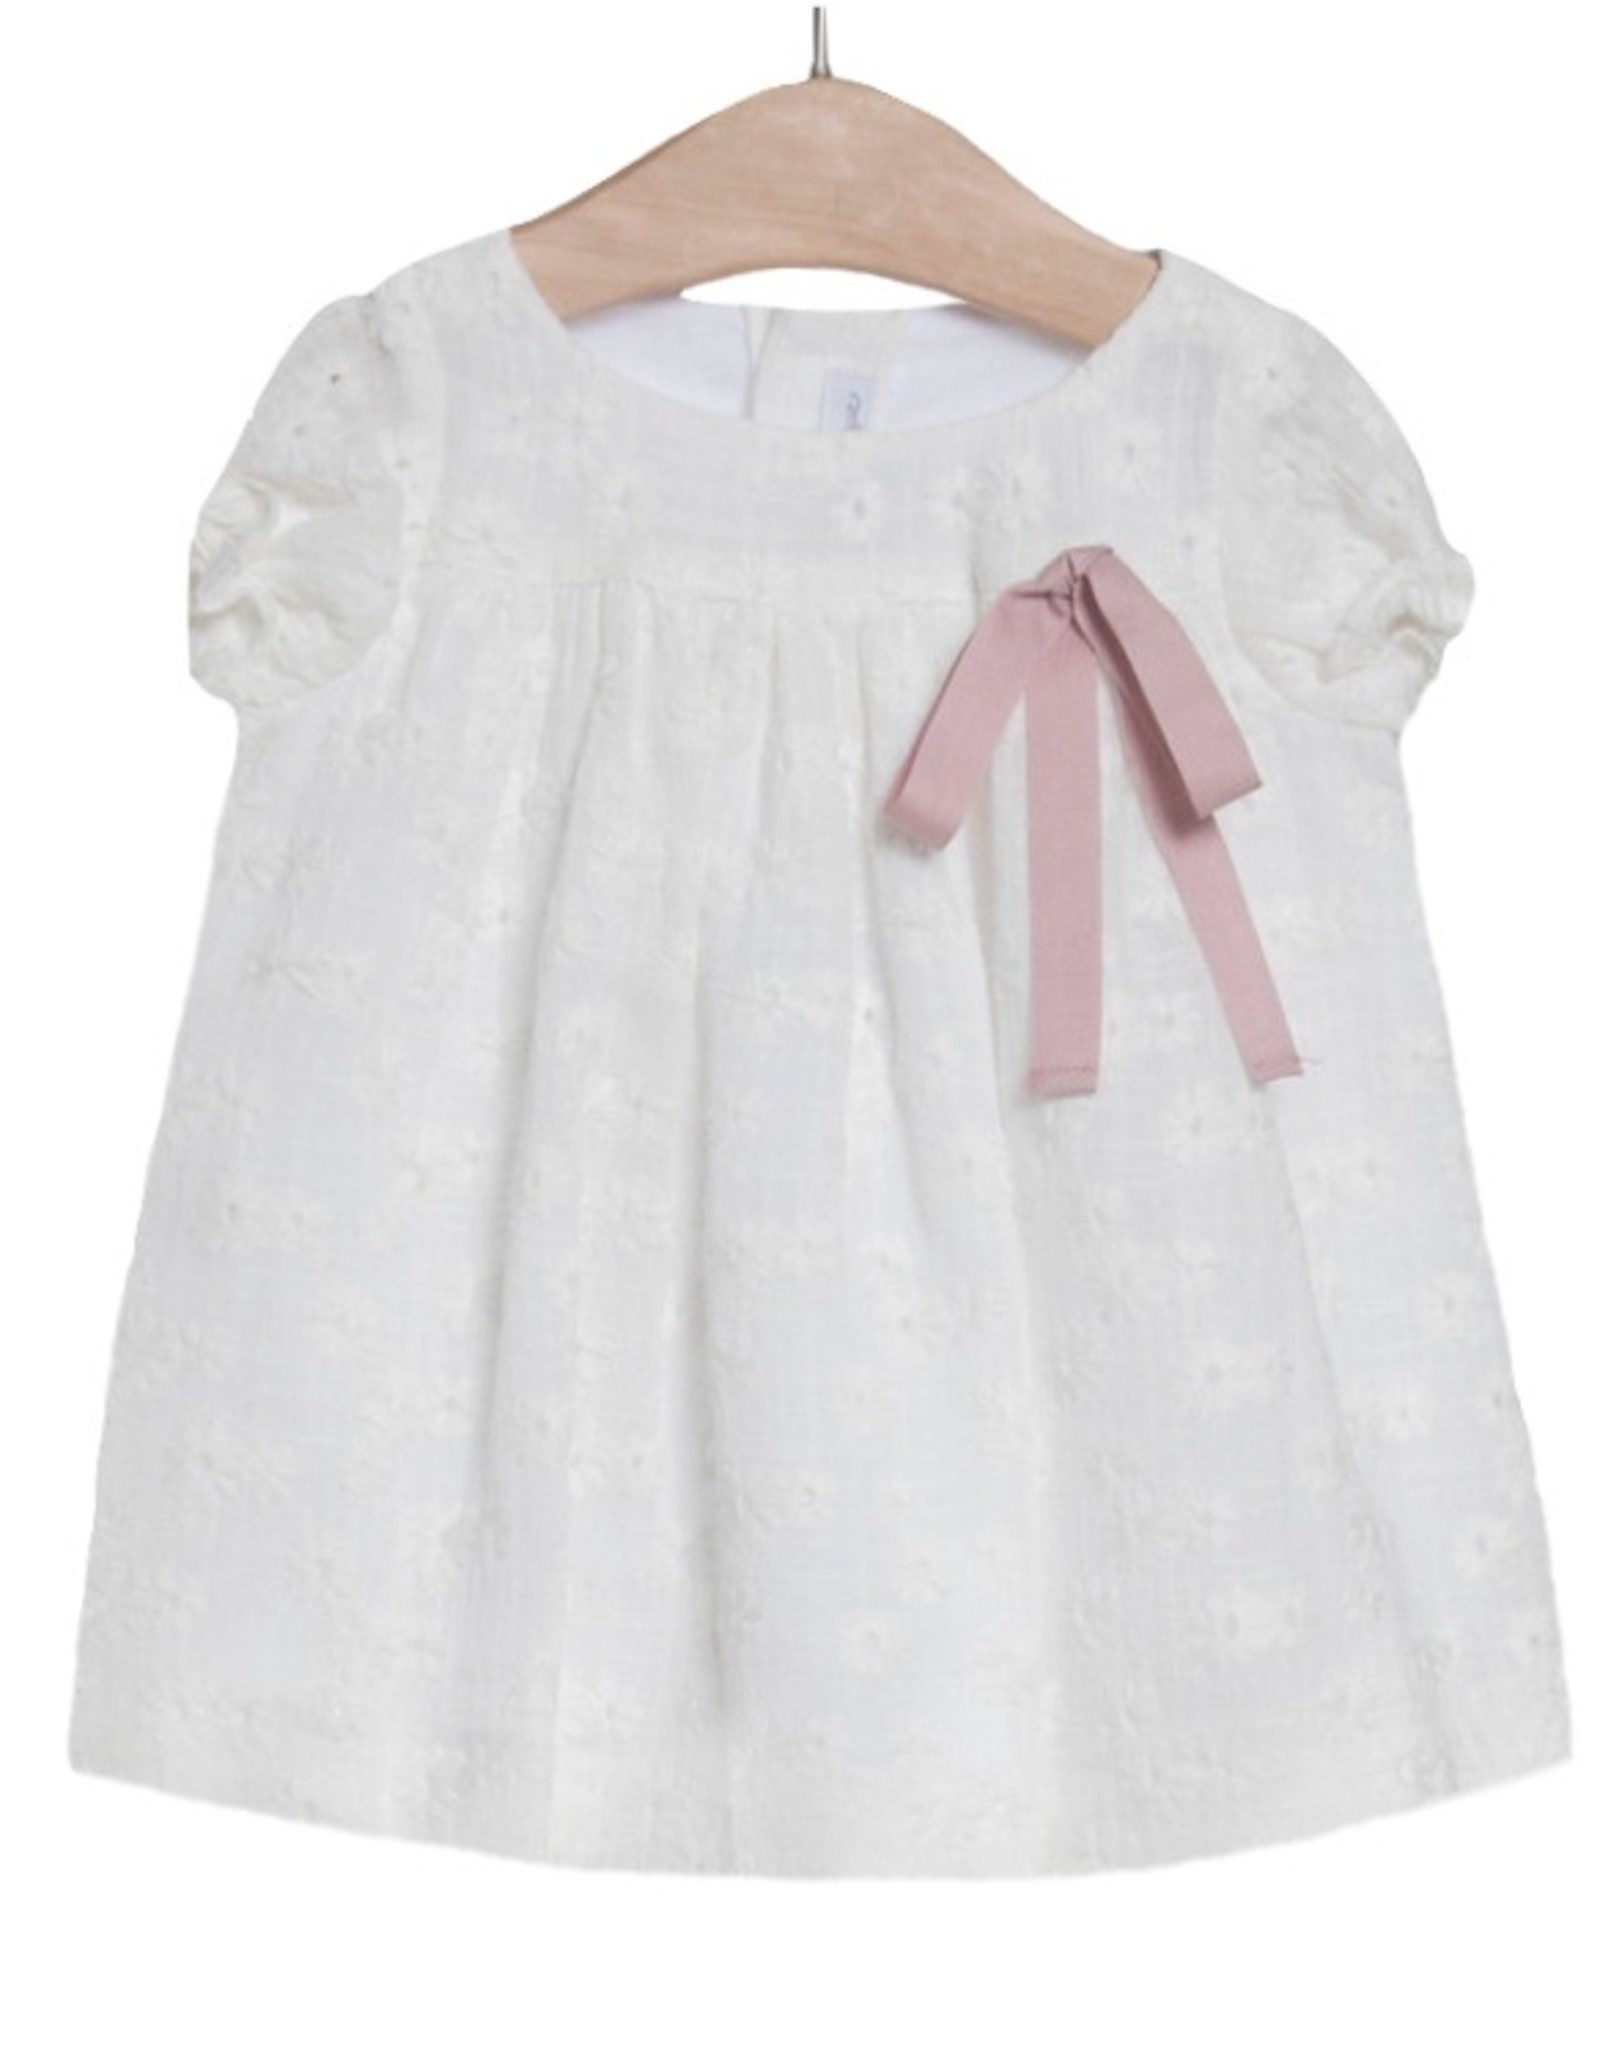 FINA EJERIQUE White Dress with Pink Ribbon